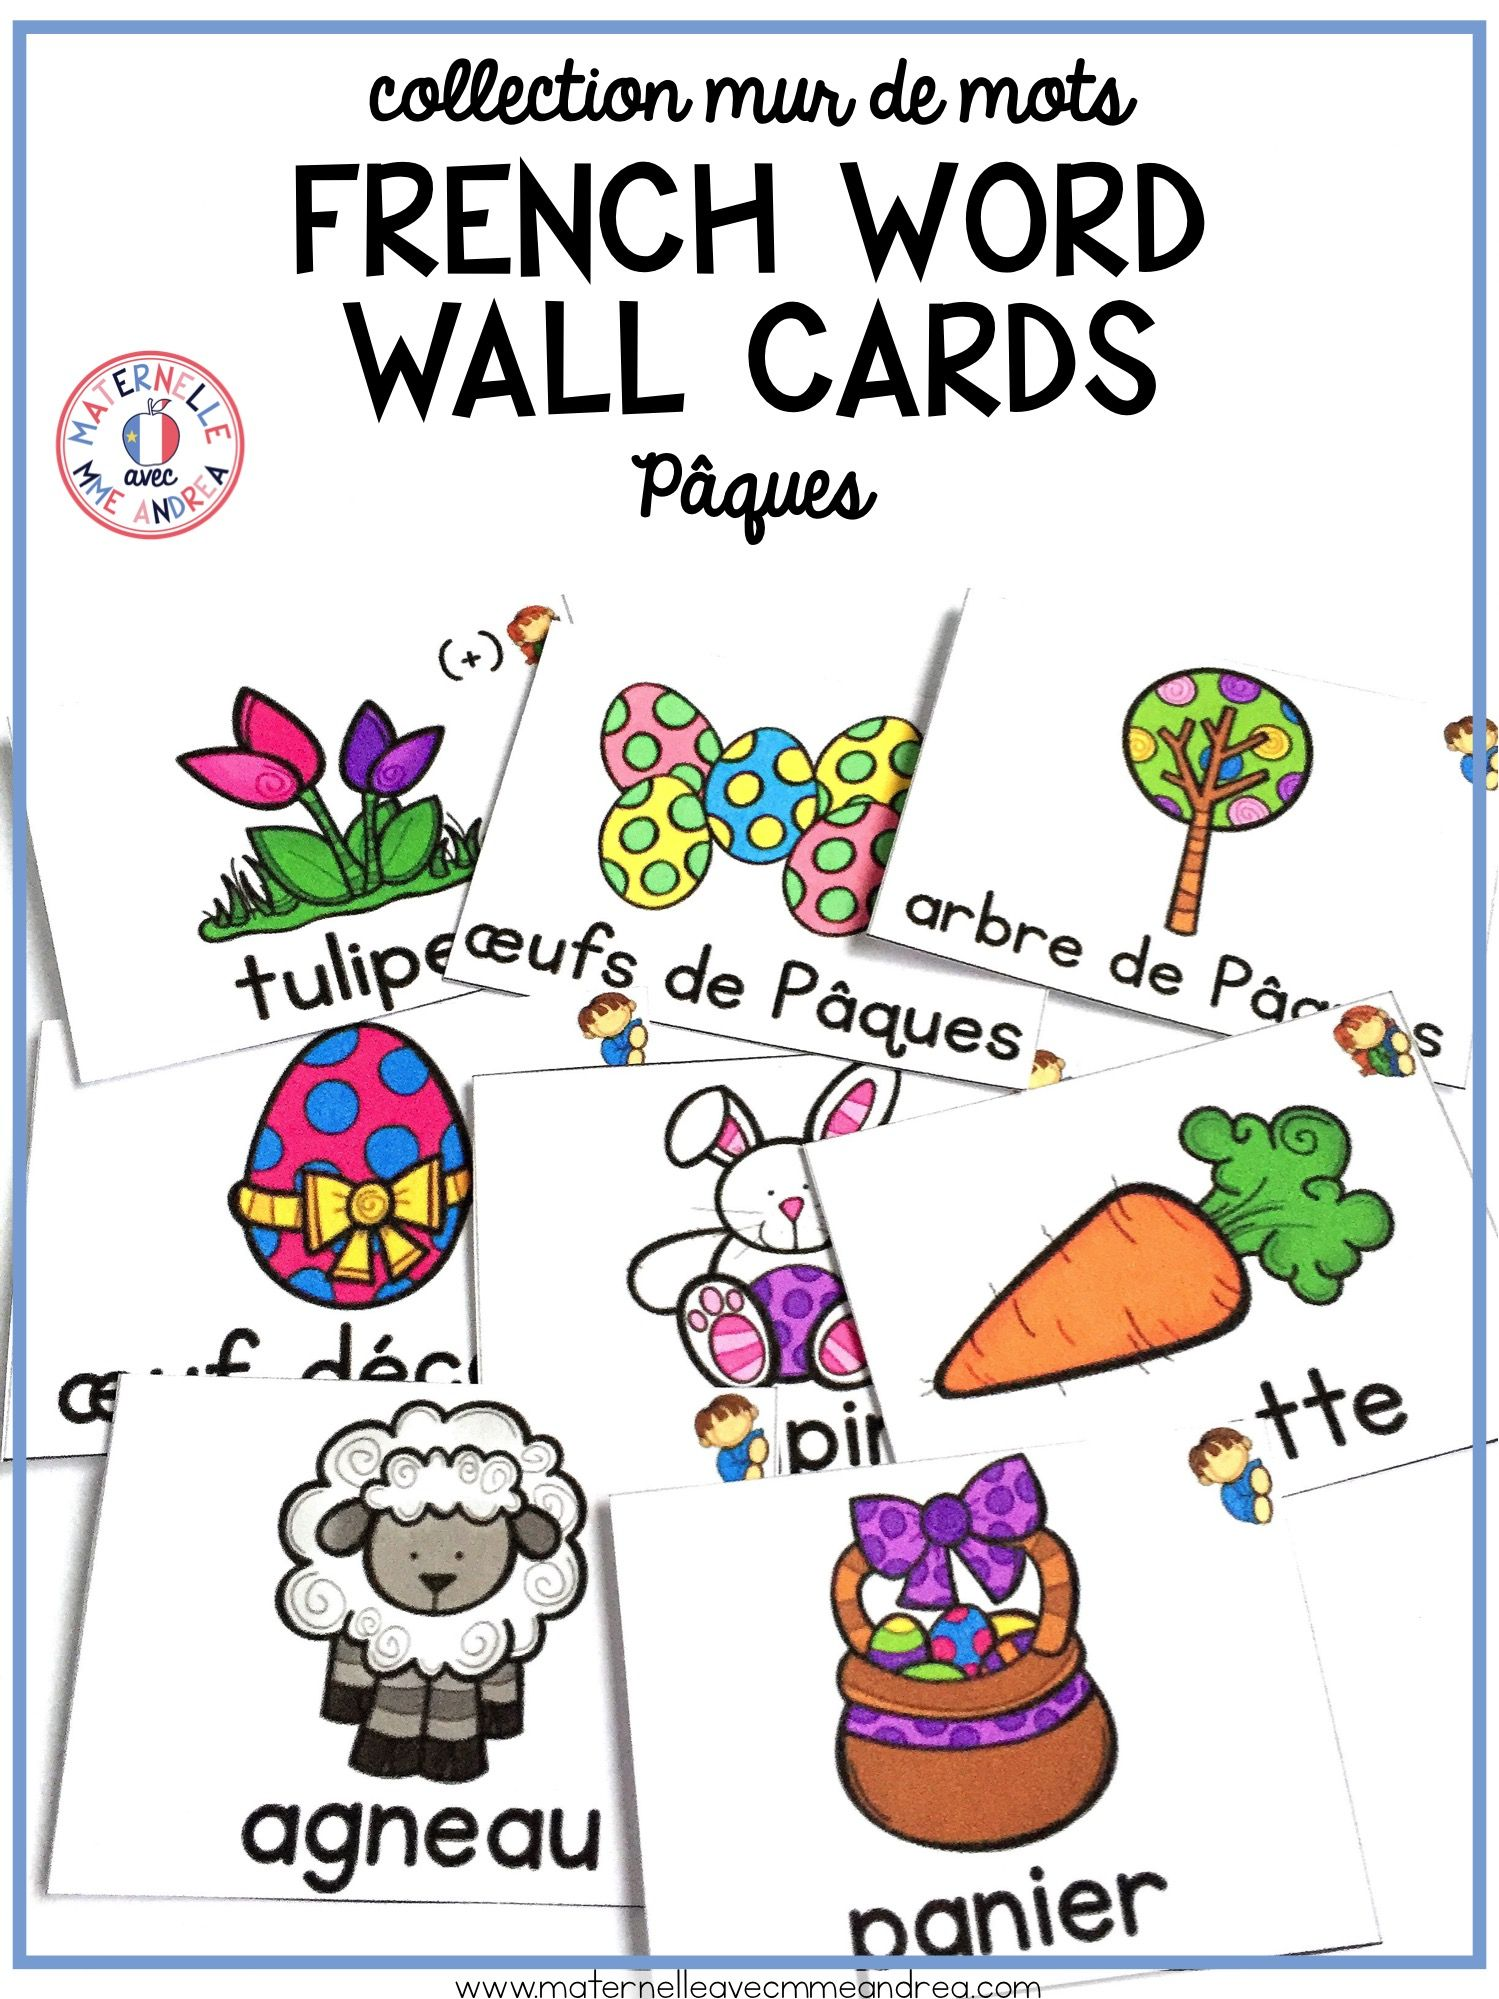 16 Different French Easter Word Wall Cards In Both Colour And Black White Use These To Teach And Review Ea Vocabulary Cards Word Wall Cards Teaching French [ 1999 x 1499 Pixel ]